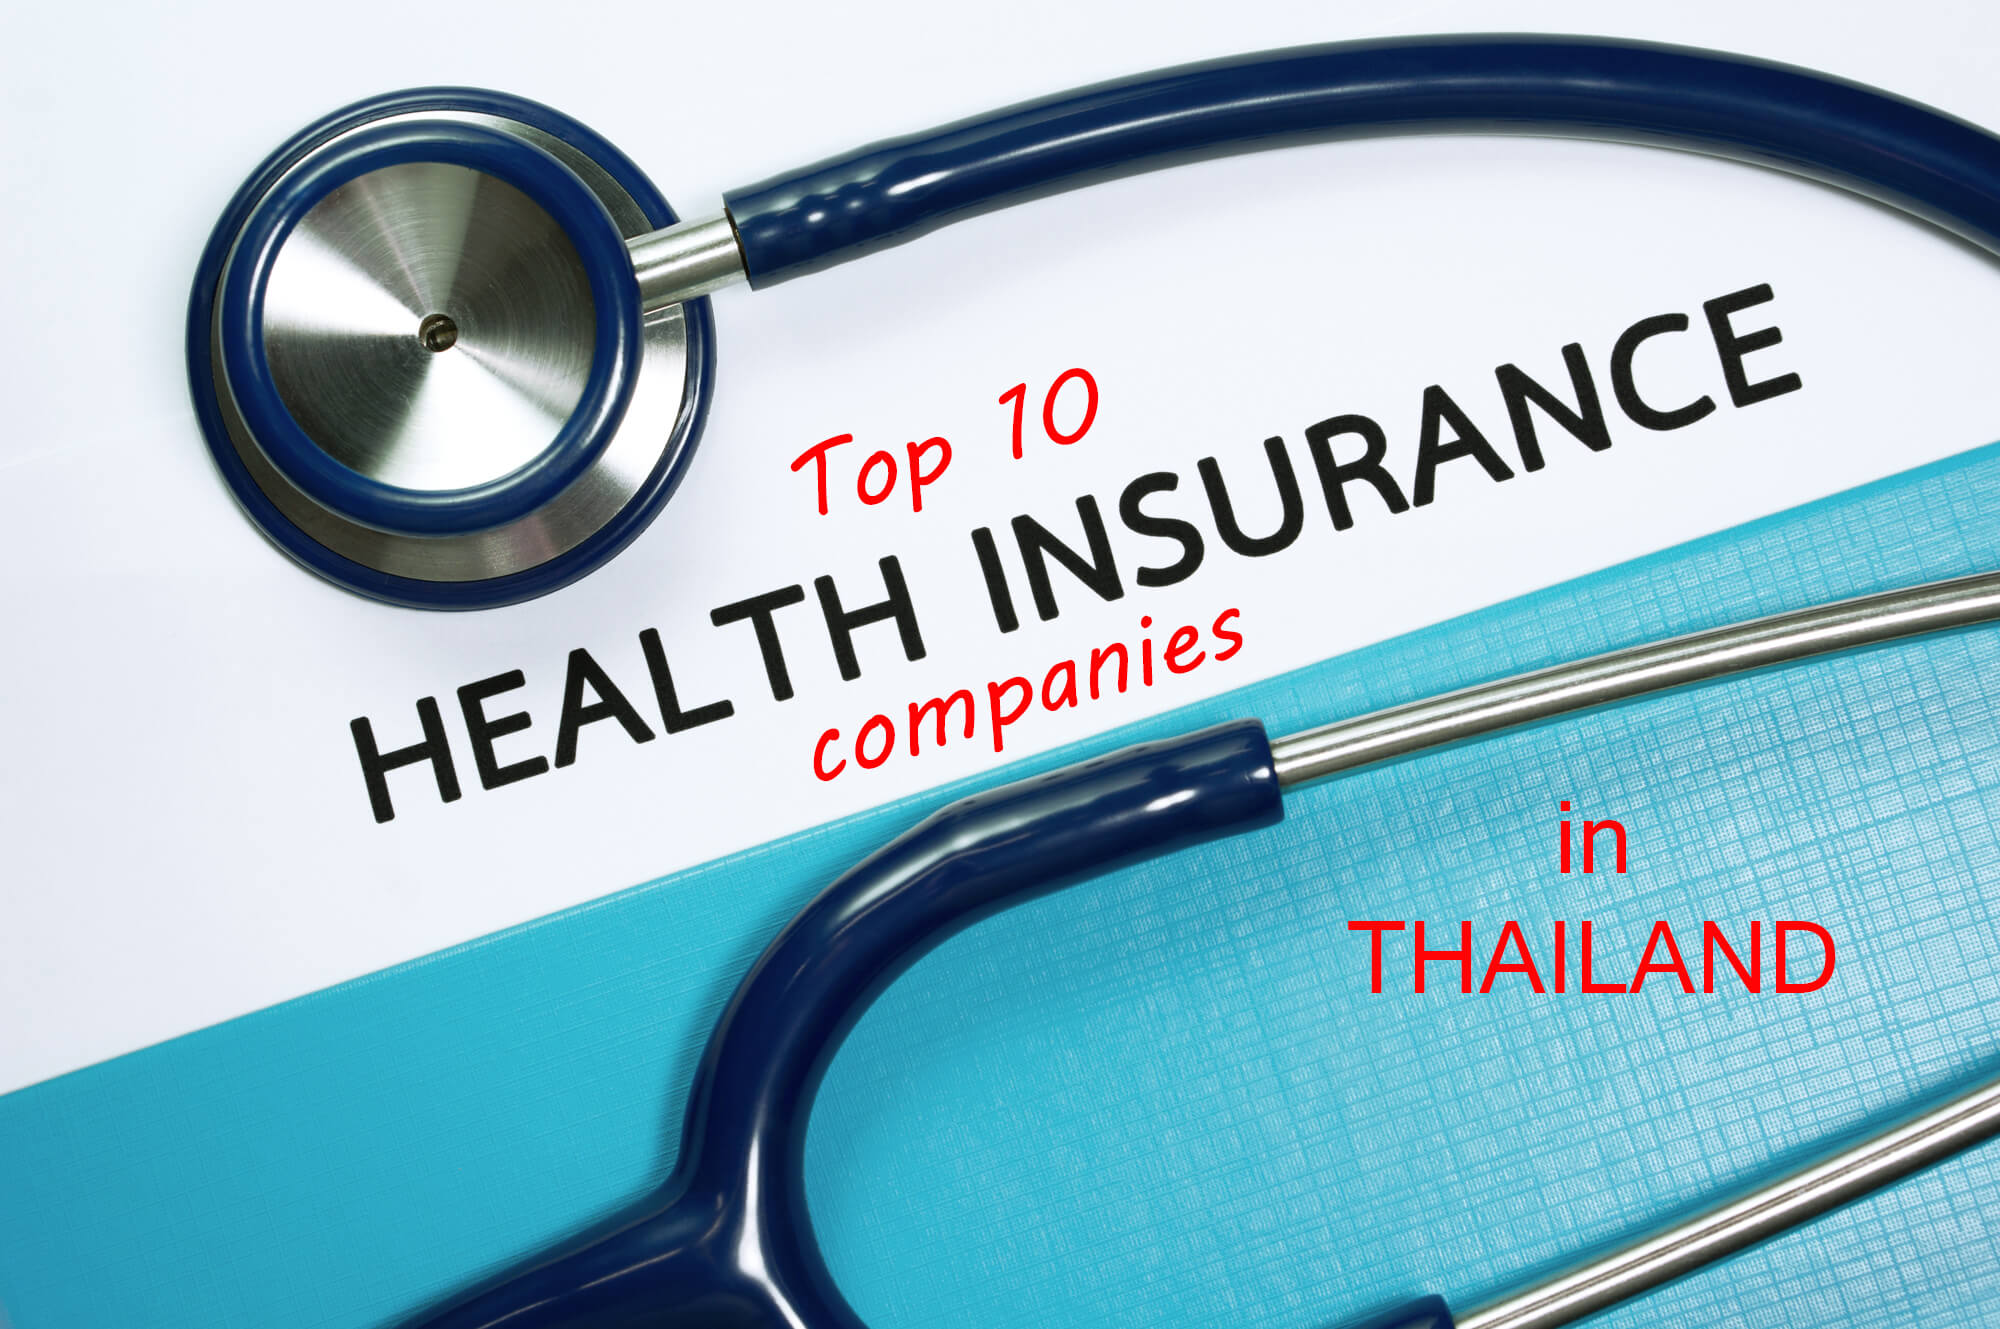 Top 10 Health Insurance companies in Thailand